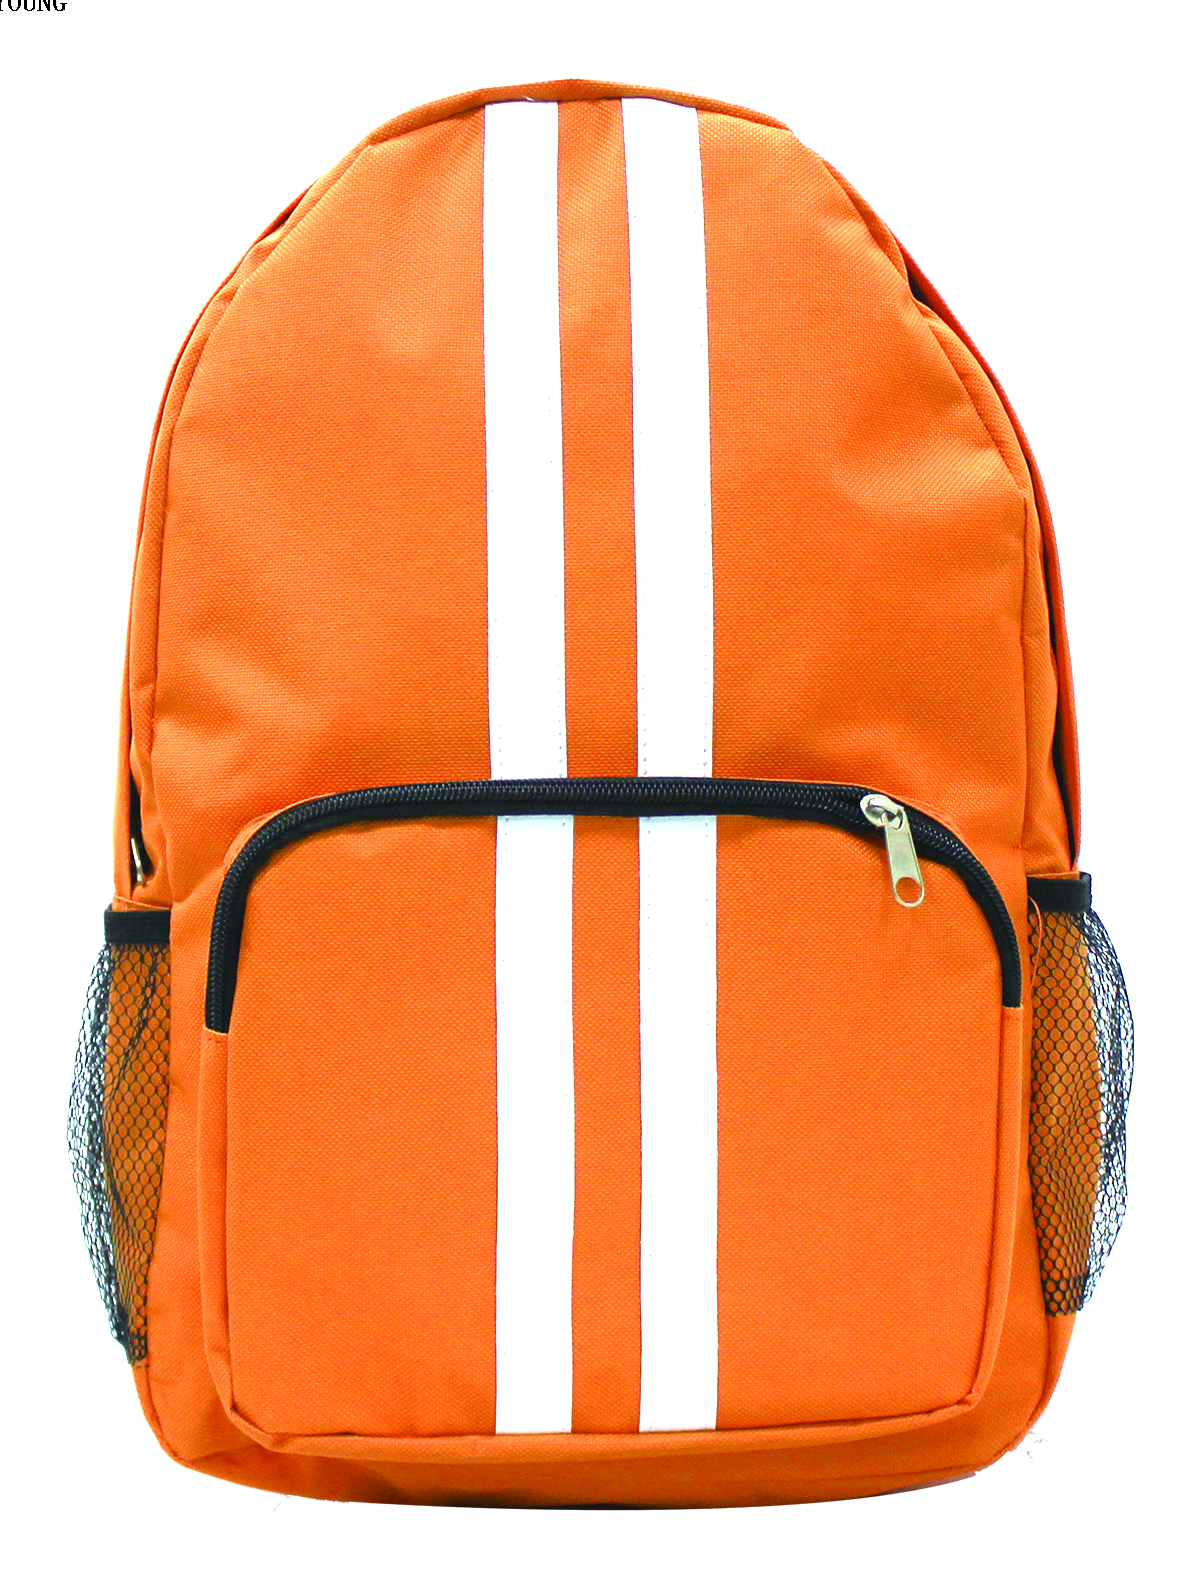 2020 New Style Light Weight Promotional Backpack Wholesale HY-A077